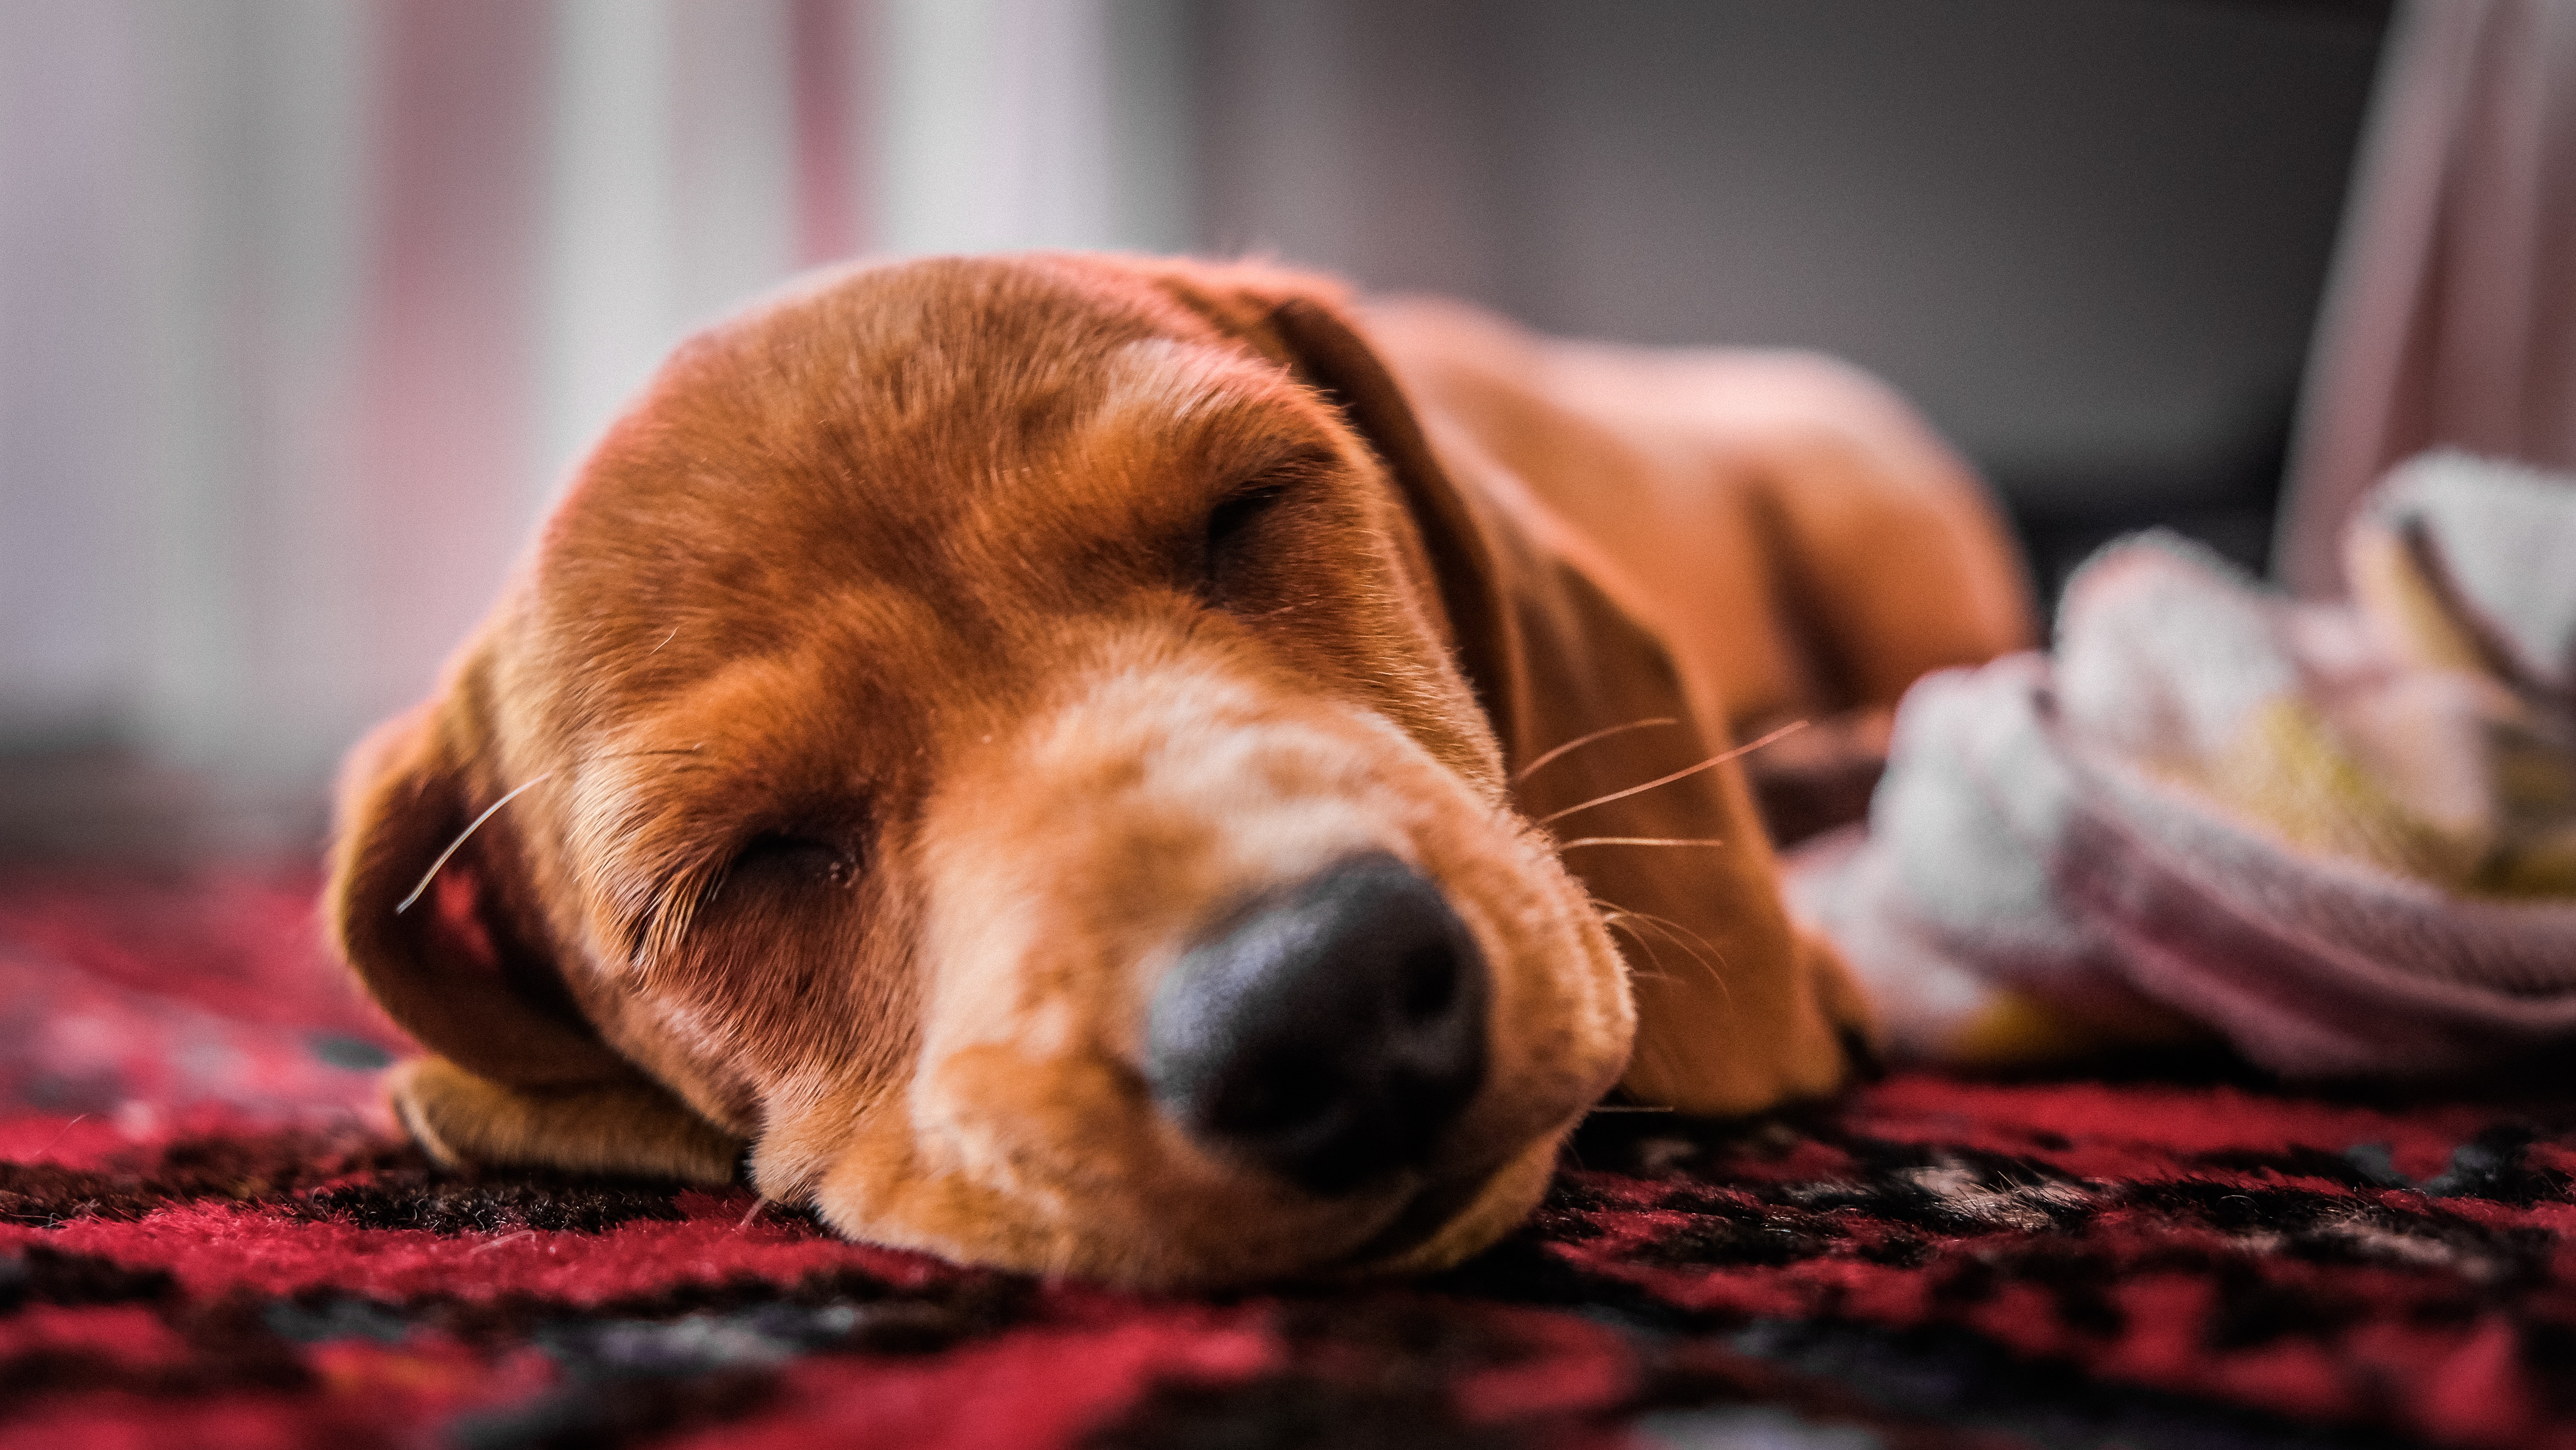 close-up-photo-of-dog-sleeping-on-the-floor.jpg